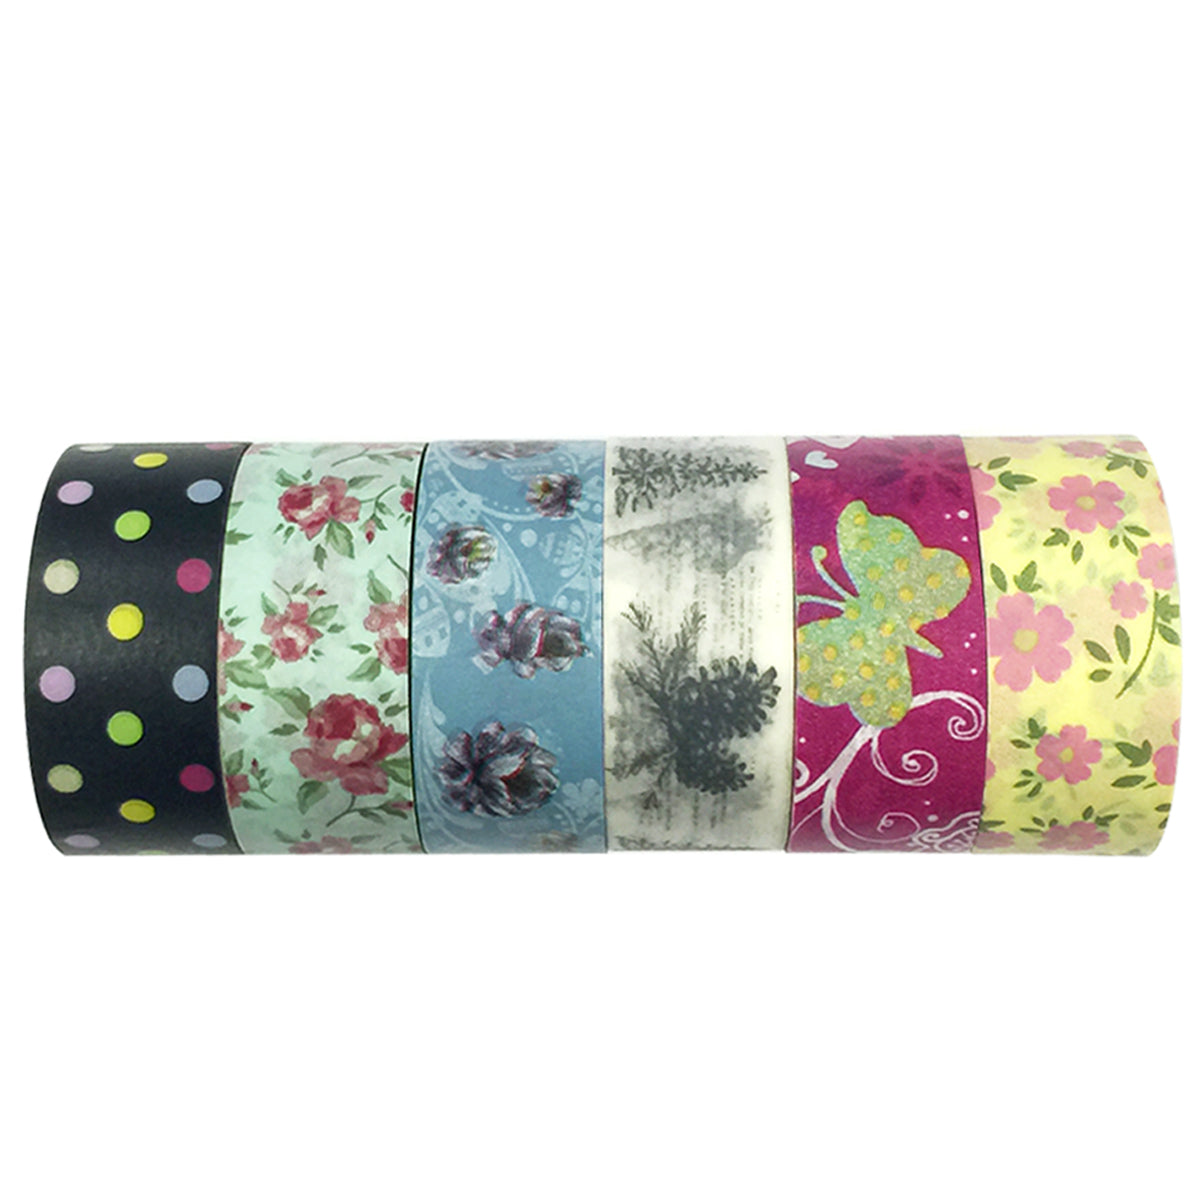 Wrapables Washi Tapes Masking Tapes 10M L x 20mm W, Set of 6, Daydream